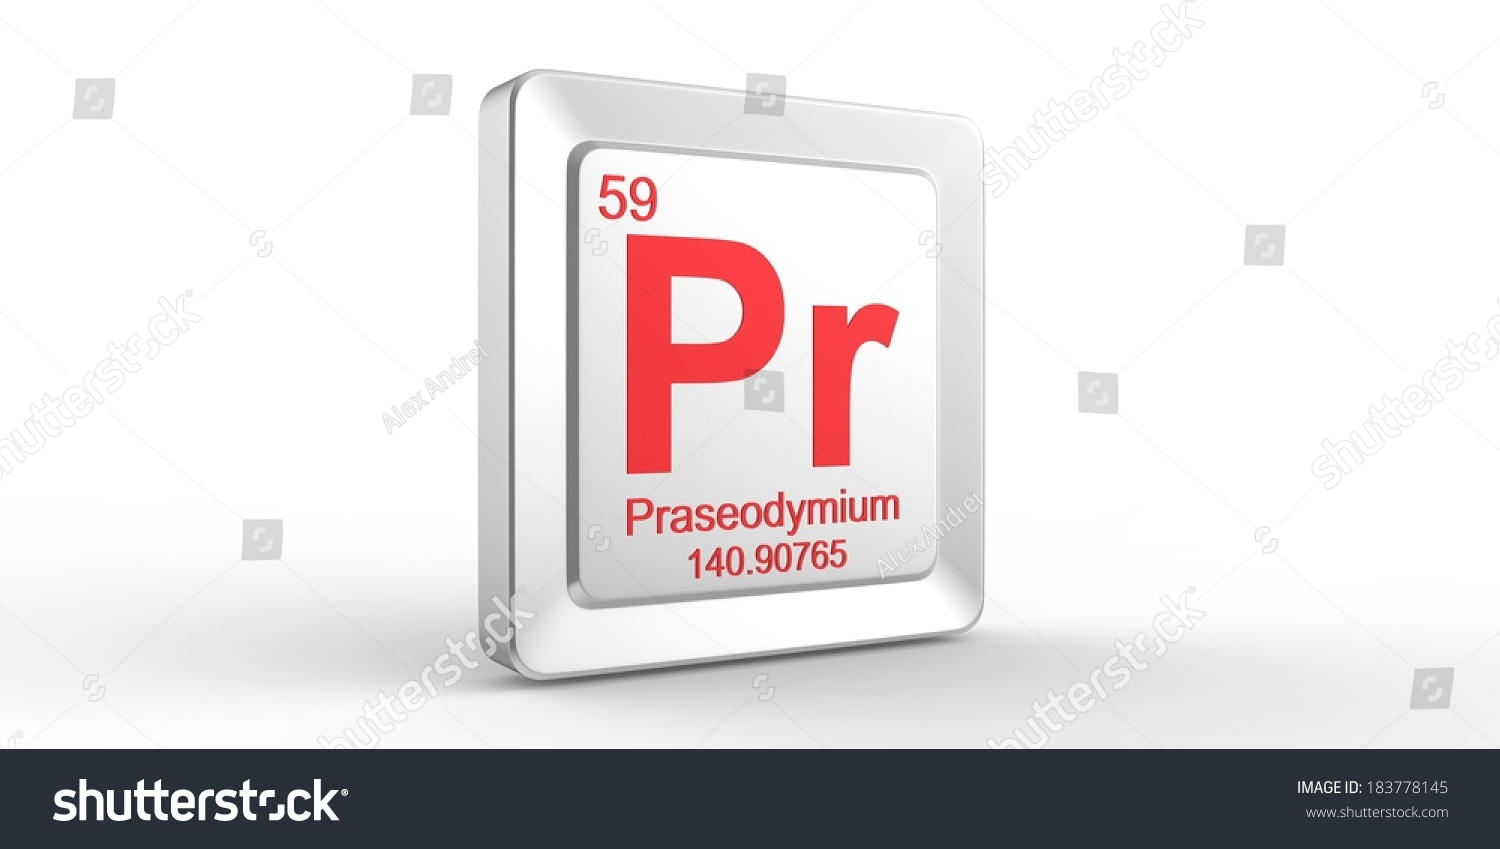 Pr element periodic table image collections periodic table images pr symbol 59 material praseodymium chemical stock illustration pr symbol 59 material for praseodymium chemical element gamestrikefo Image collections